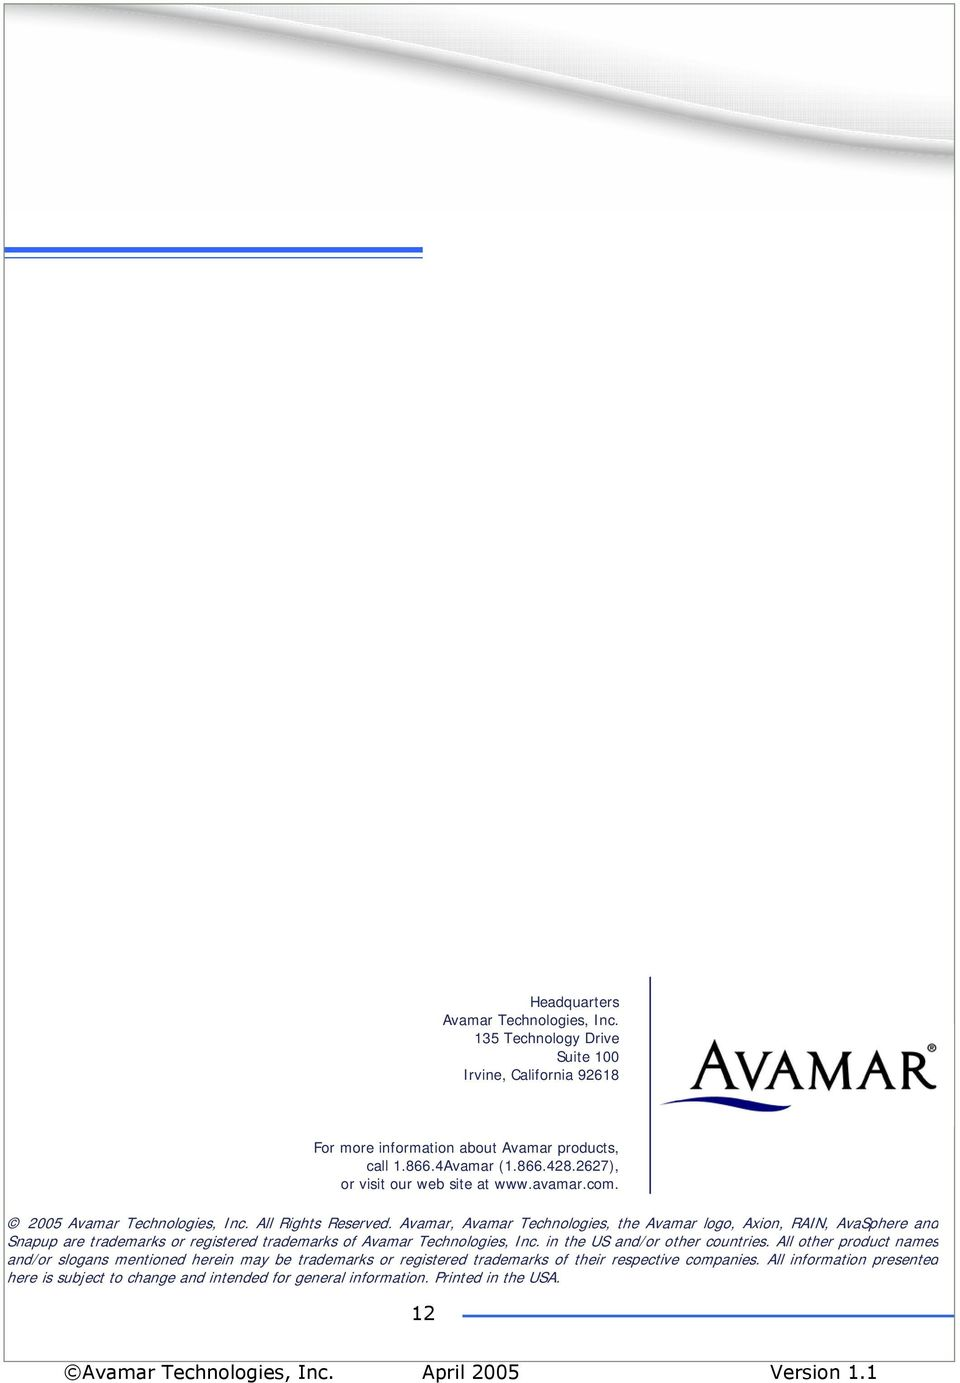 Avamar, Avamar Technologies, the Avamar logo, Axion, RAIN, AvaSphere and Snapup are trademarks or registered trademarks of Avamar Technologies, Inc.